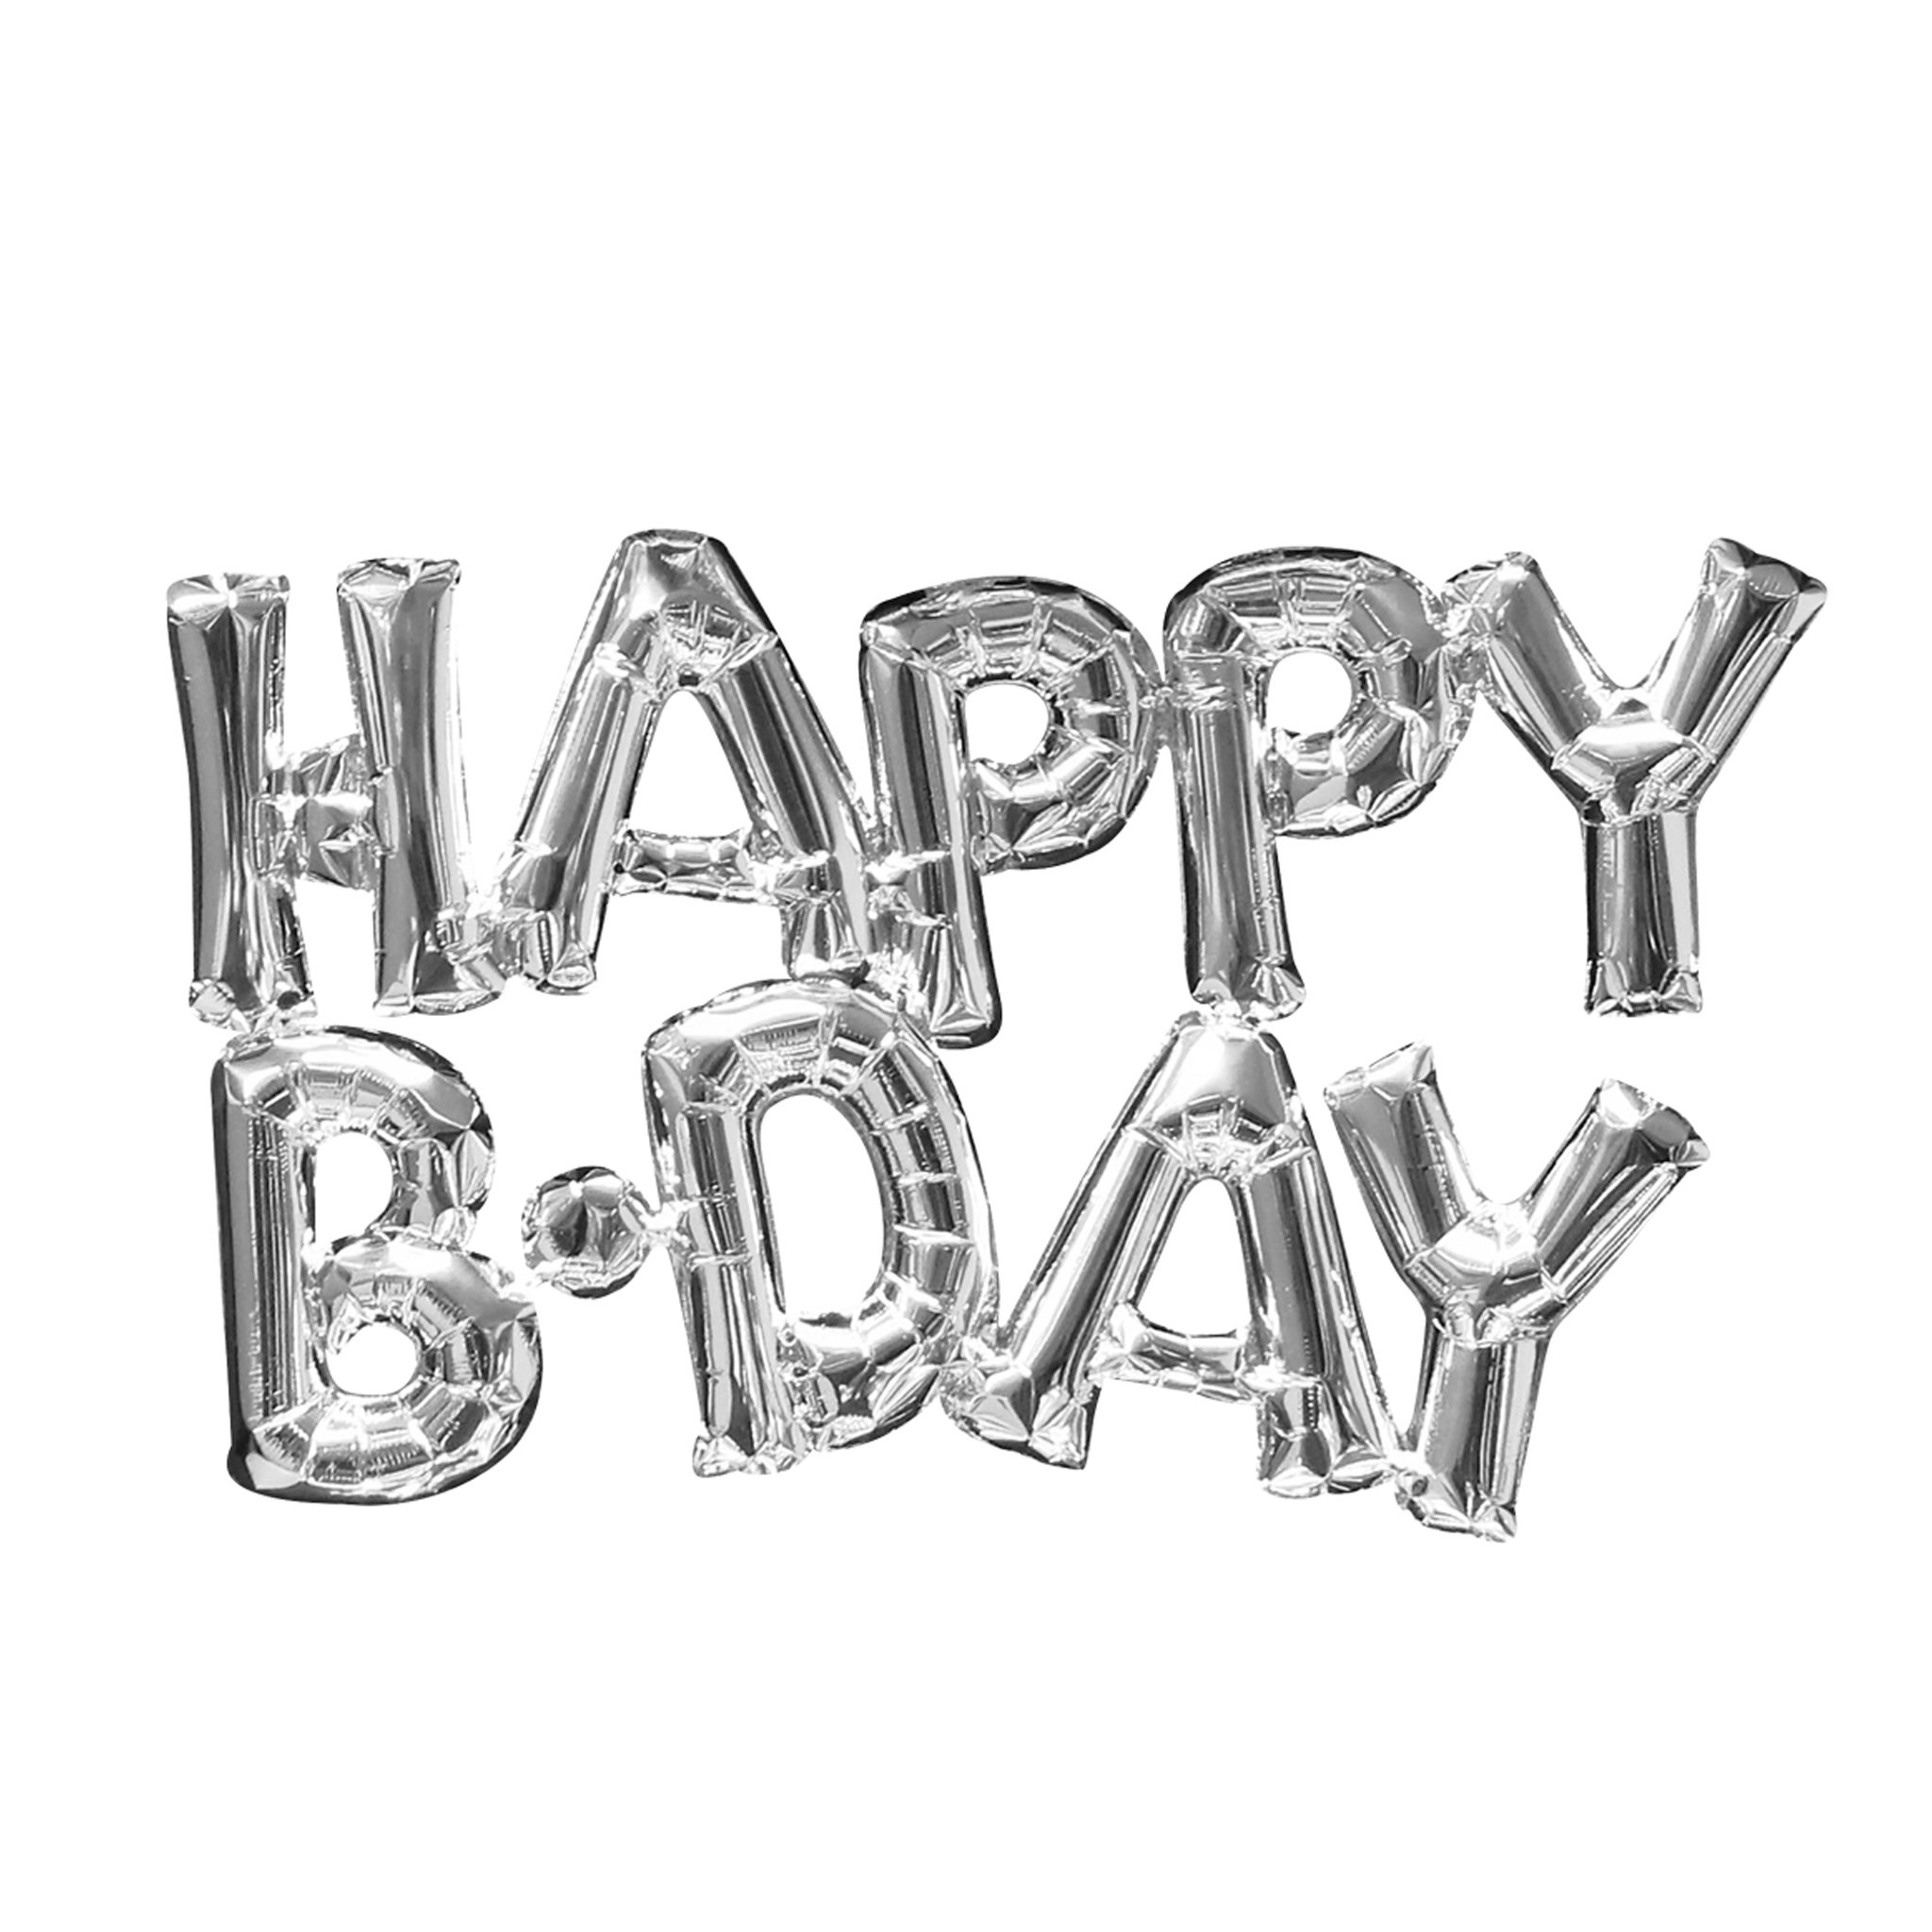 BUY ME / NEW ITEM $9.99 each HAPPY B•DAY Silver Foil Balloon 30in x 19in